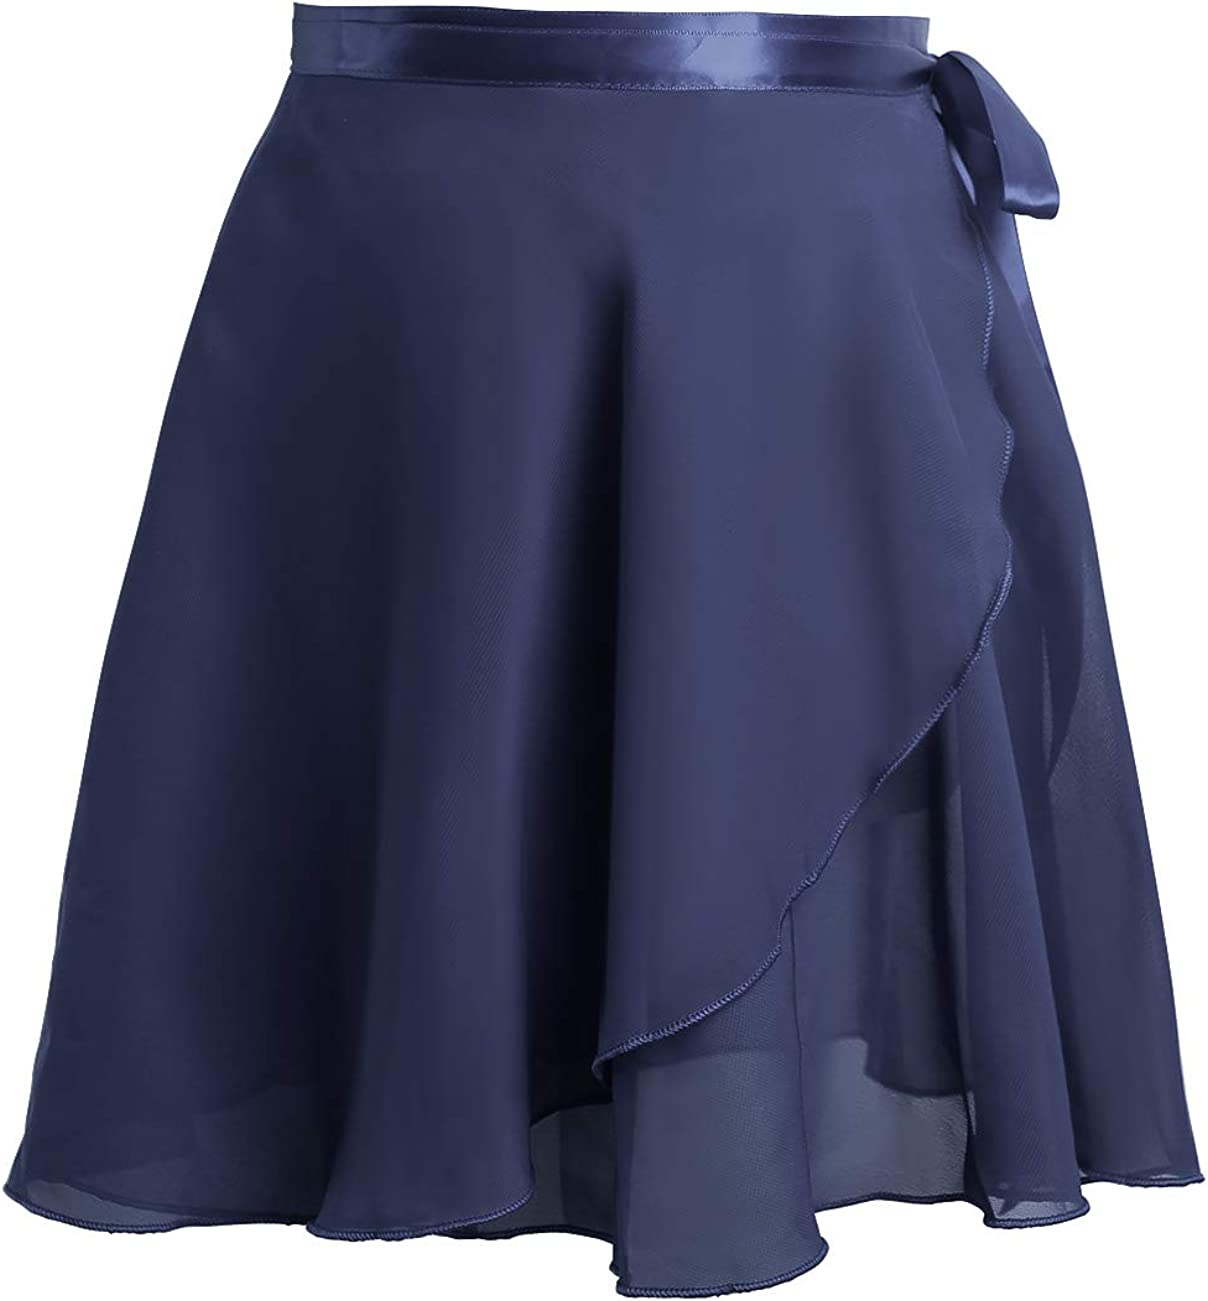 Genuine Daydance Girls Women Sheer Ballet New products, world's highest quality popular! Wrap Skirts Over Chiffon Scarf